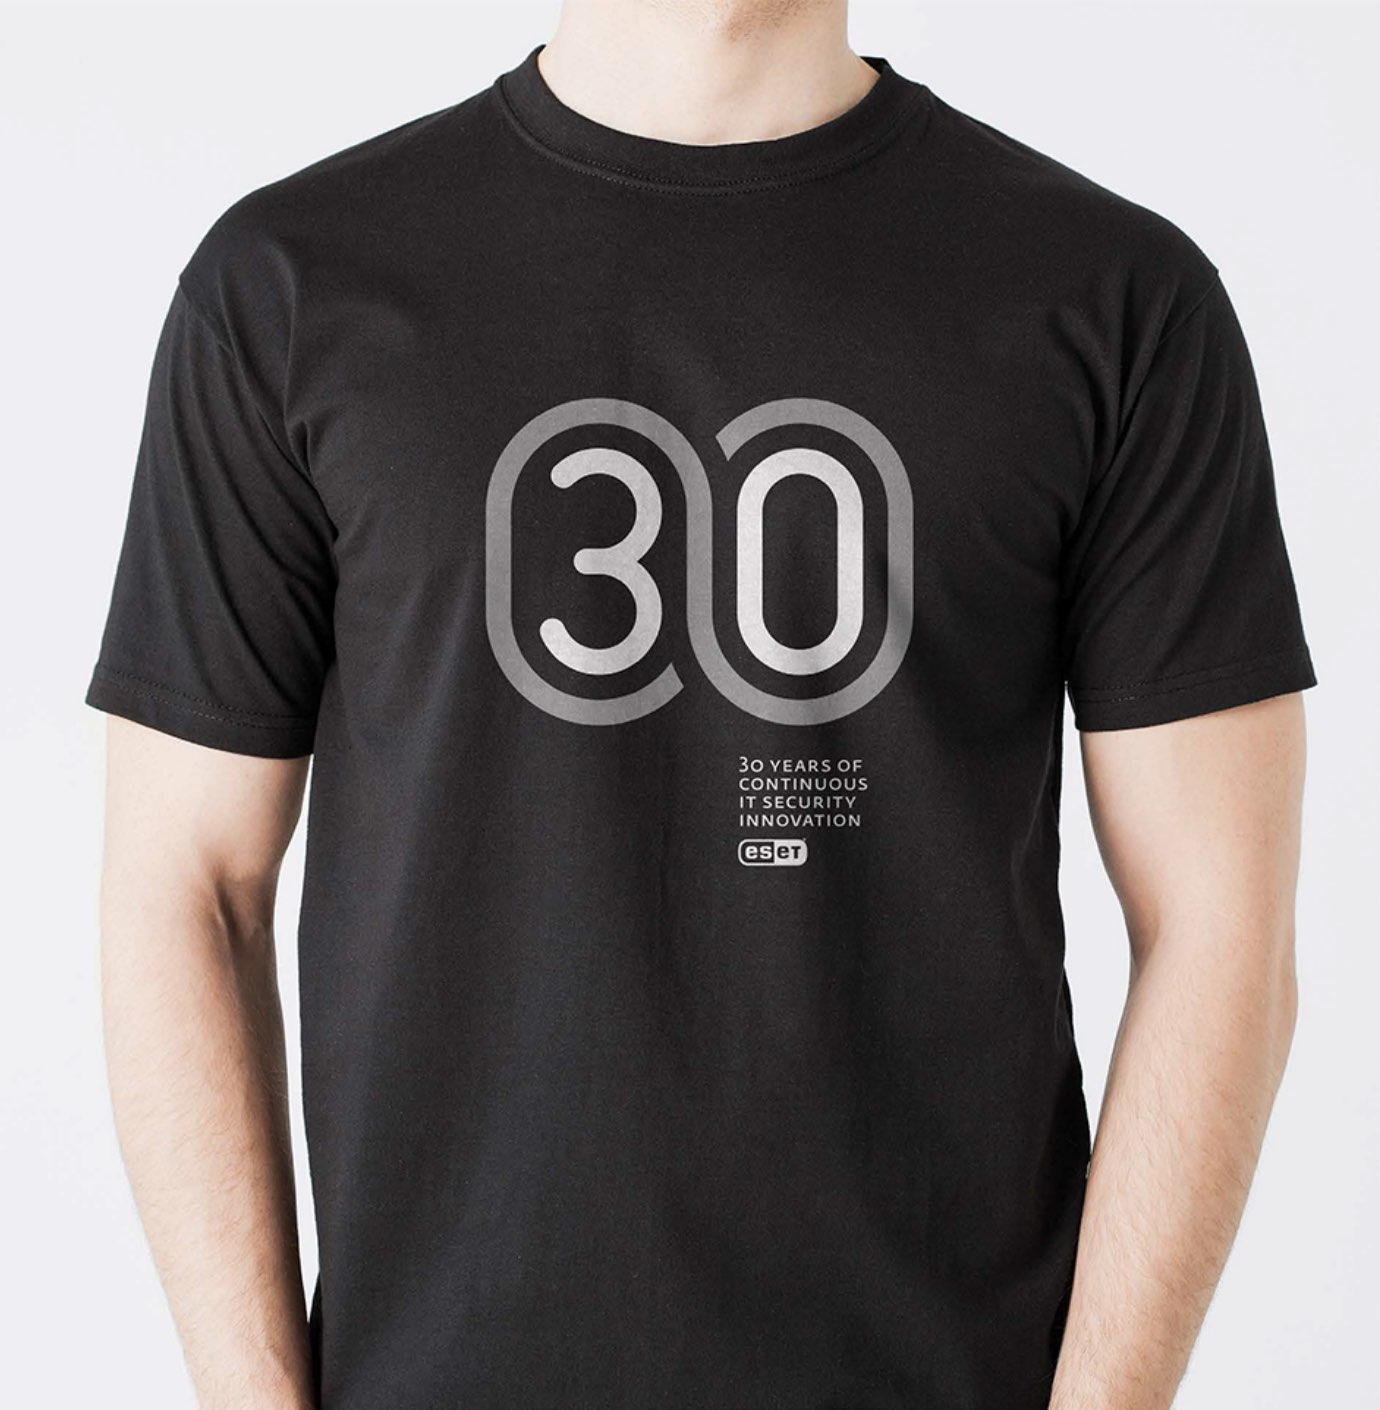 studio 001 eset t shirt design 012x